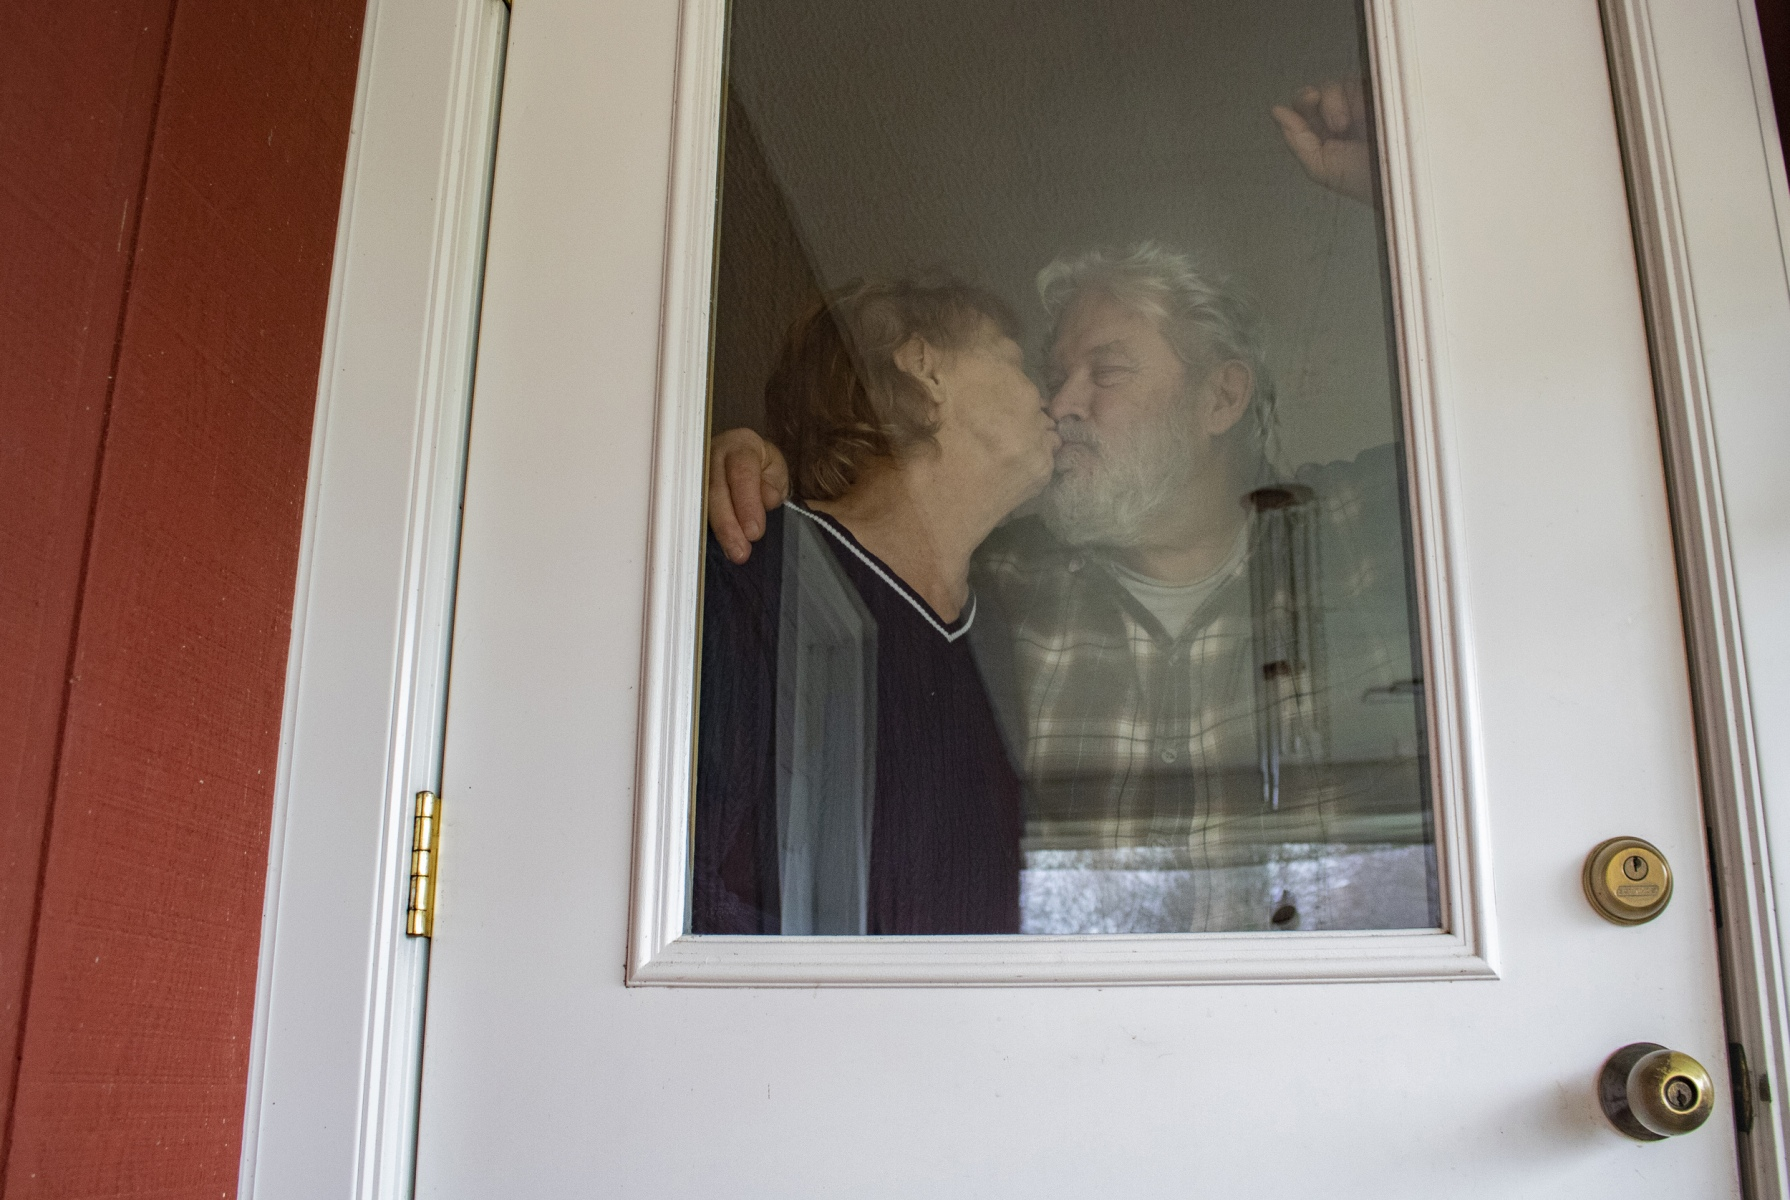 Carol and Jeff Knight share a kiss, Thursday, March 26, 2020 at their home in Mahomet, Ill. Both are in their late 70s. Carol expressed that they were lucky they had one another still. Their four daughters and four son-in-laws left food and supplies on their front porch and called them on the phone for the following three months as COVID-19 spread throughout the United States.